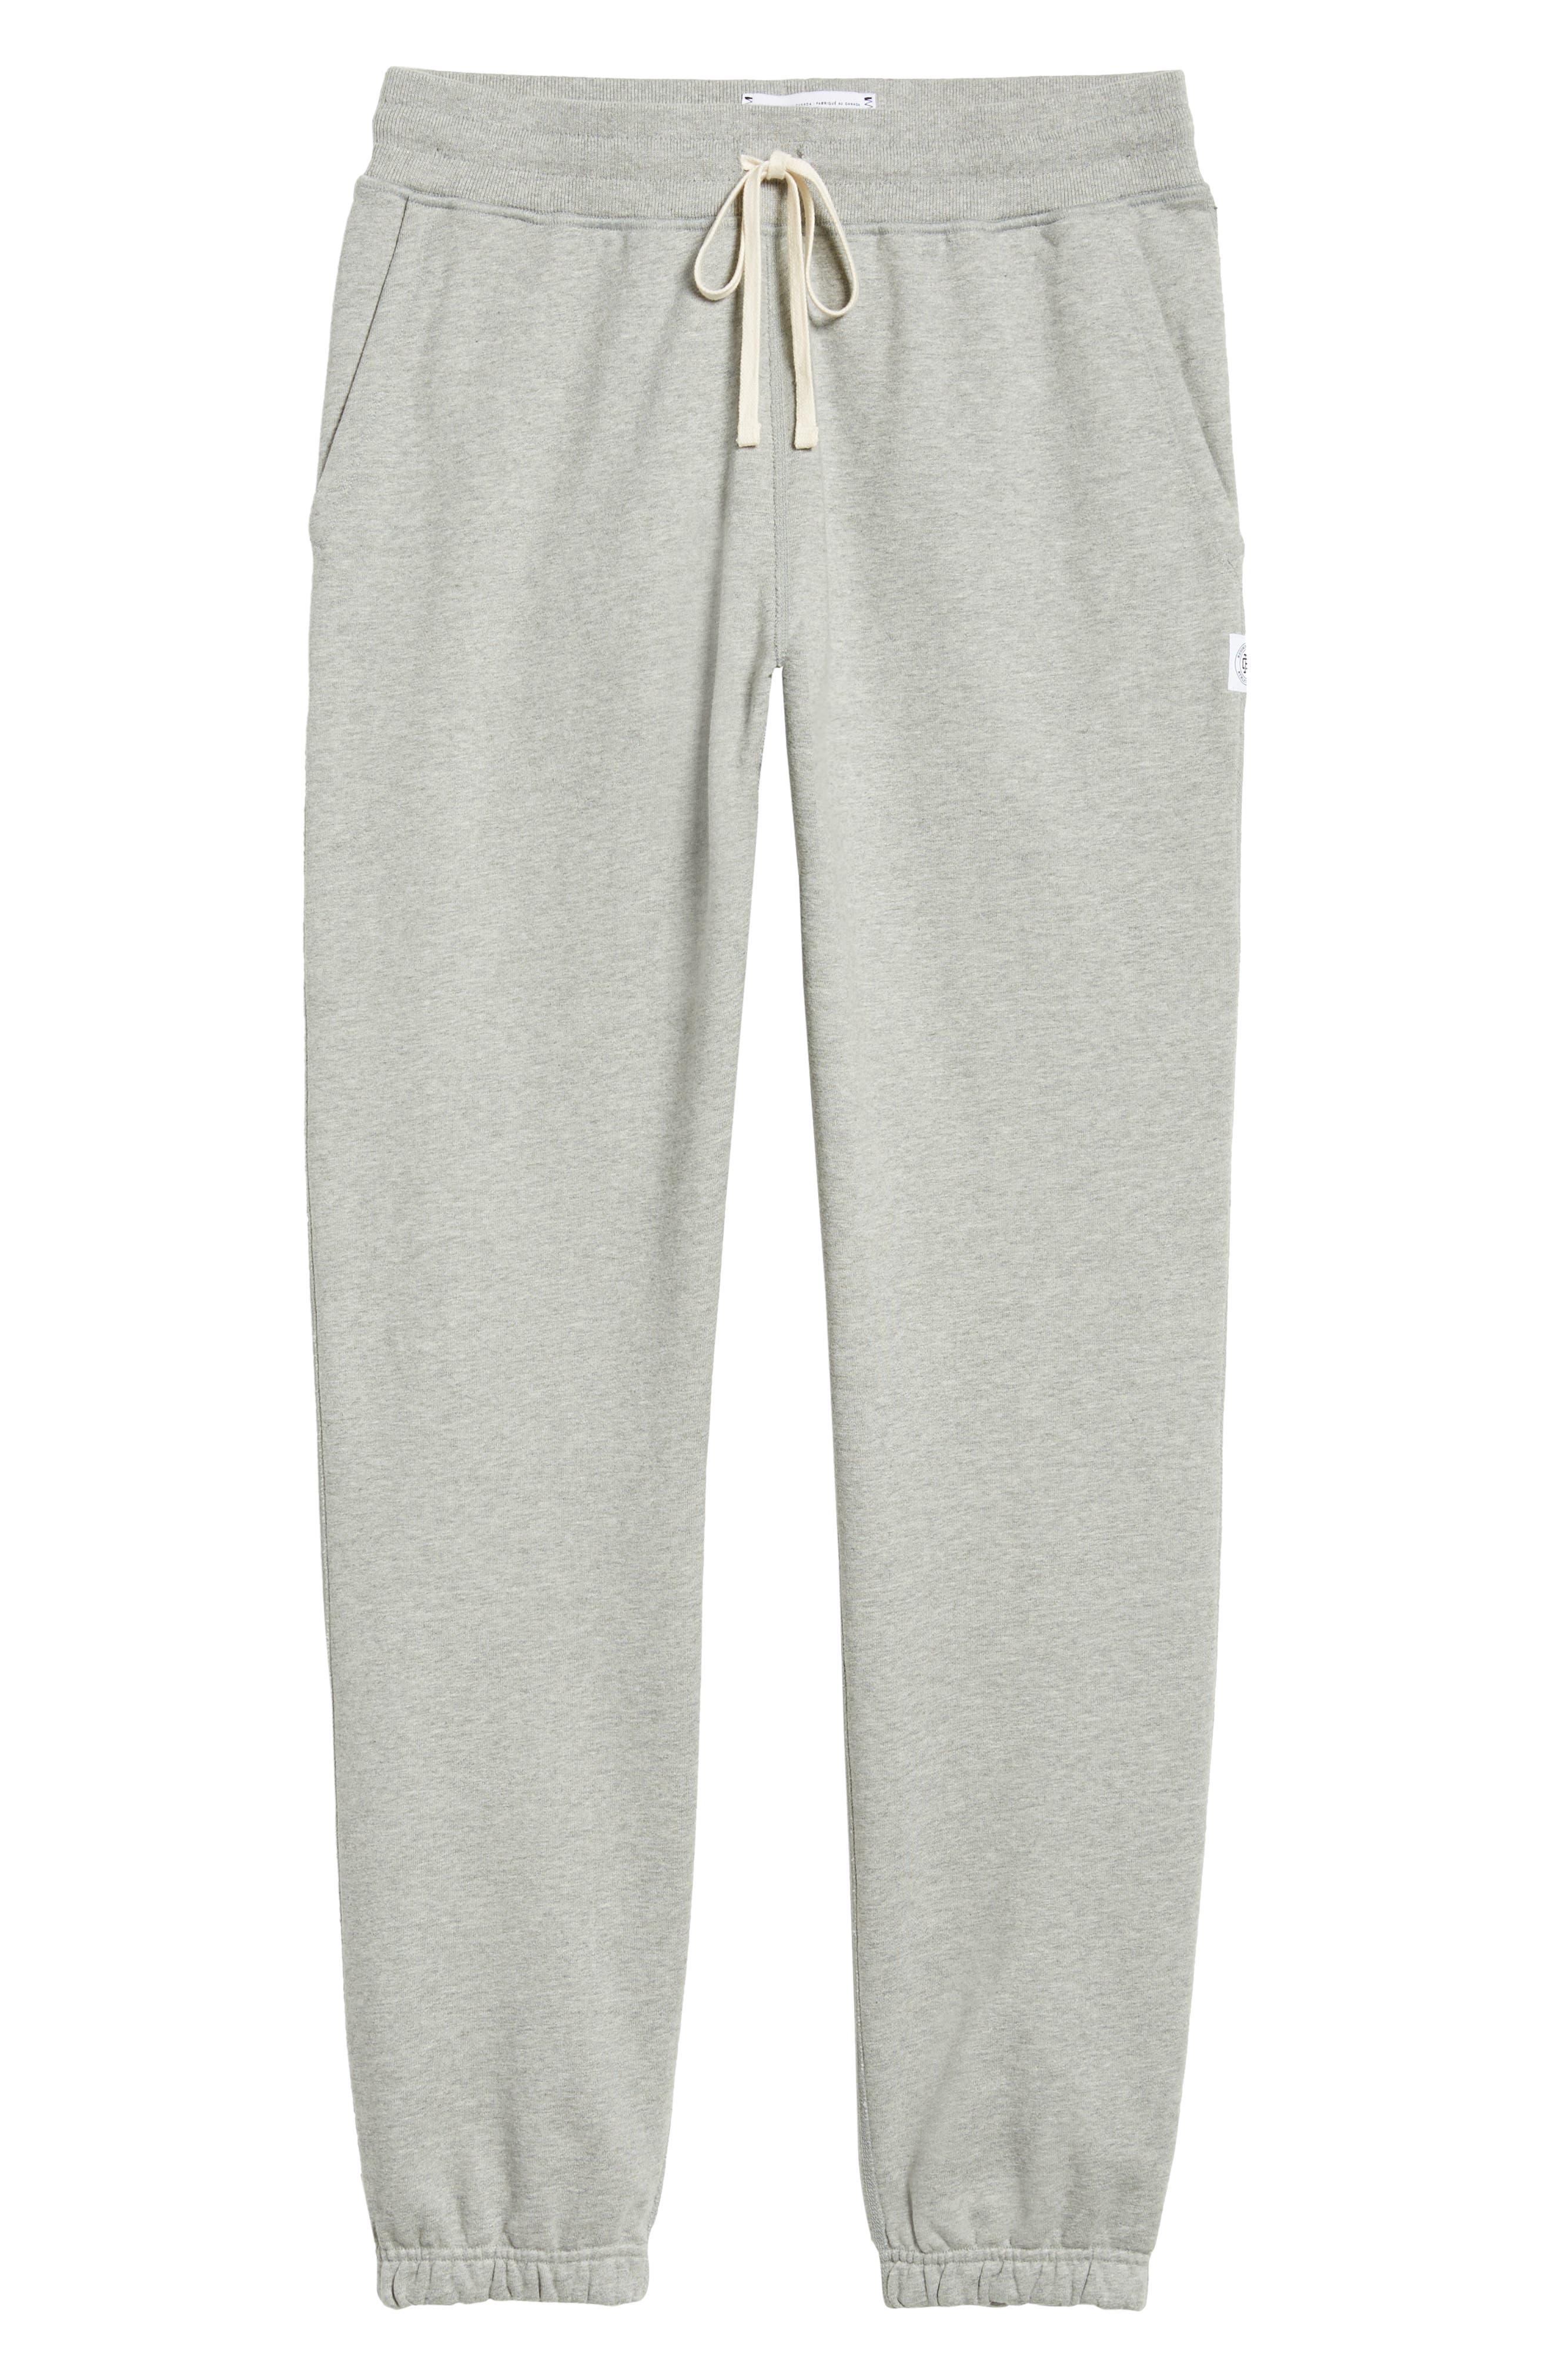 REIGNING CHAMP, Cotton Jogger Pants, Alternate thumbnail 7, color, HEATHER GREY